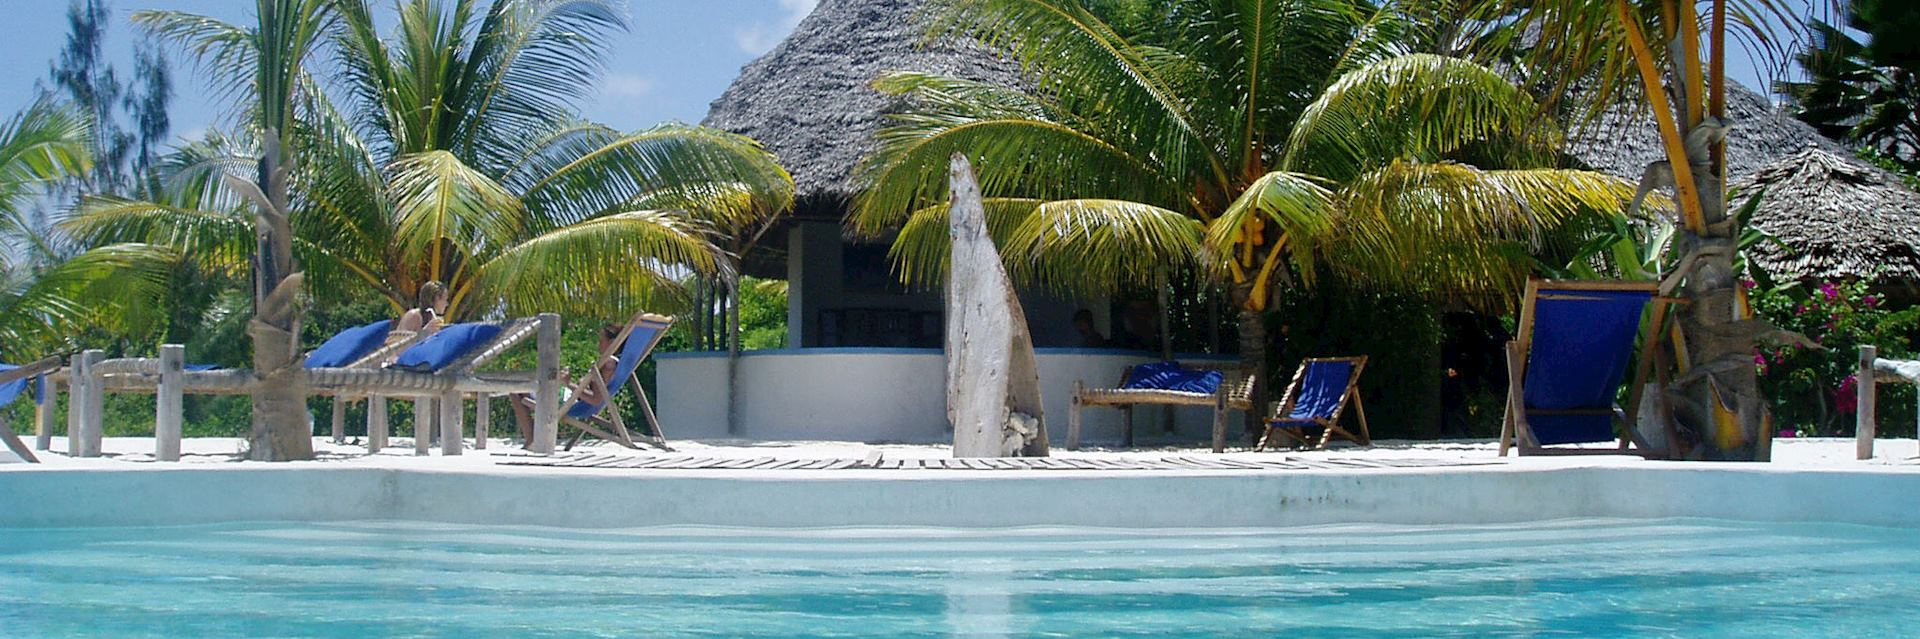 Shooting Star Lodge, Zanzibar Island